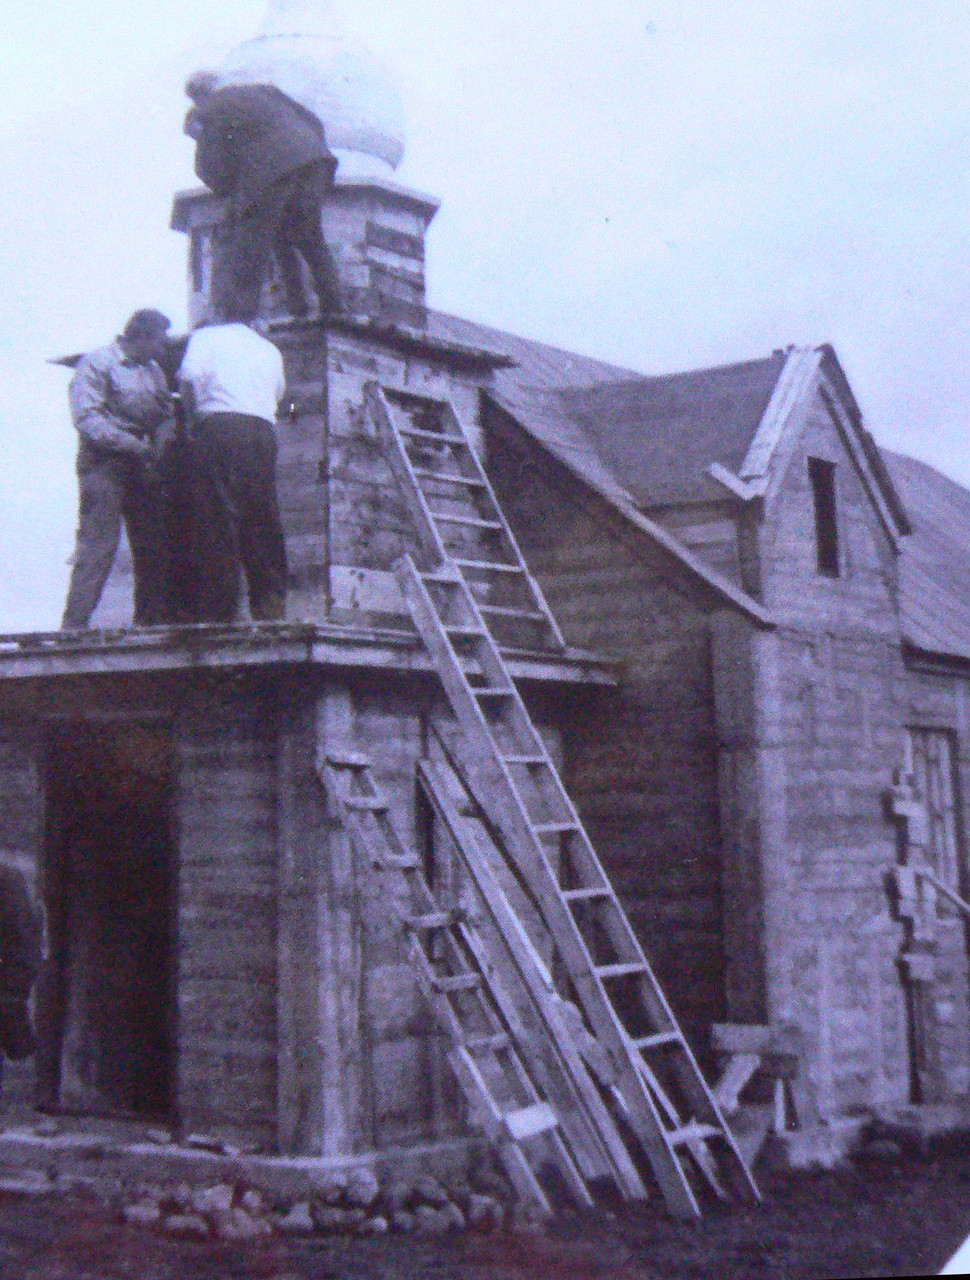 Work in progress on the church tower 1968.